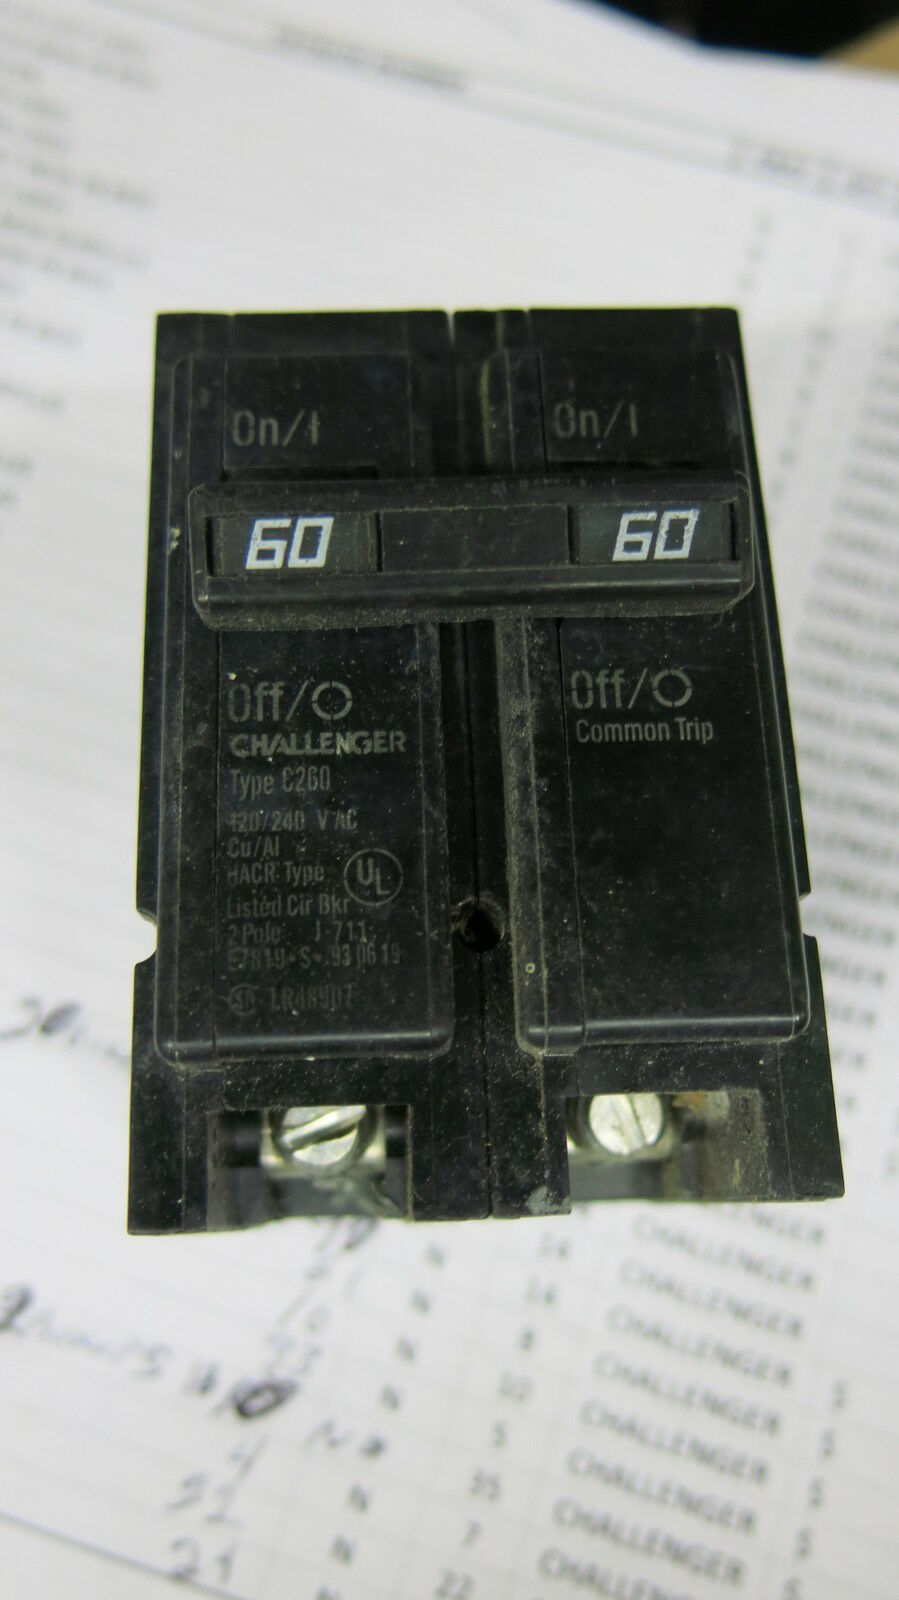 1973 Dodge Dart Fuse Box Challenger Home Schematics Diagram 60 Amp 2 Pole Circuit Breaker C260 Ebay